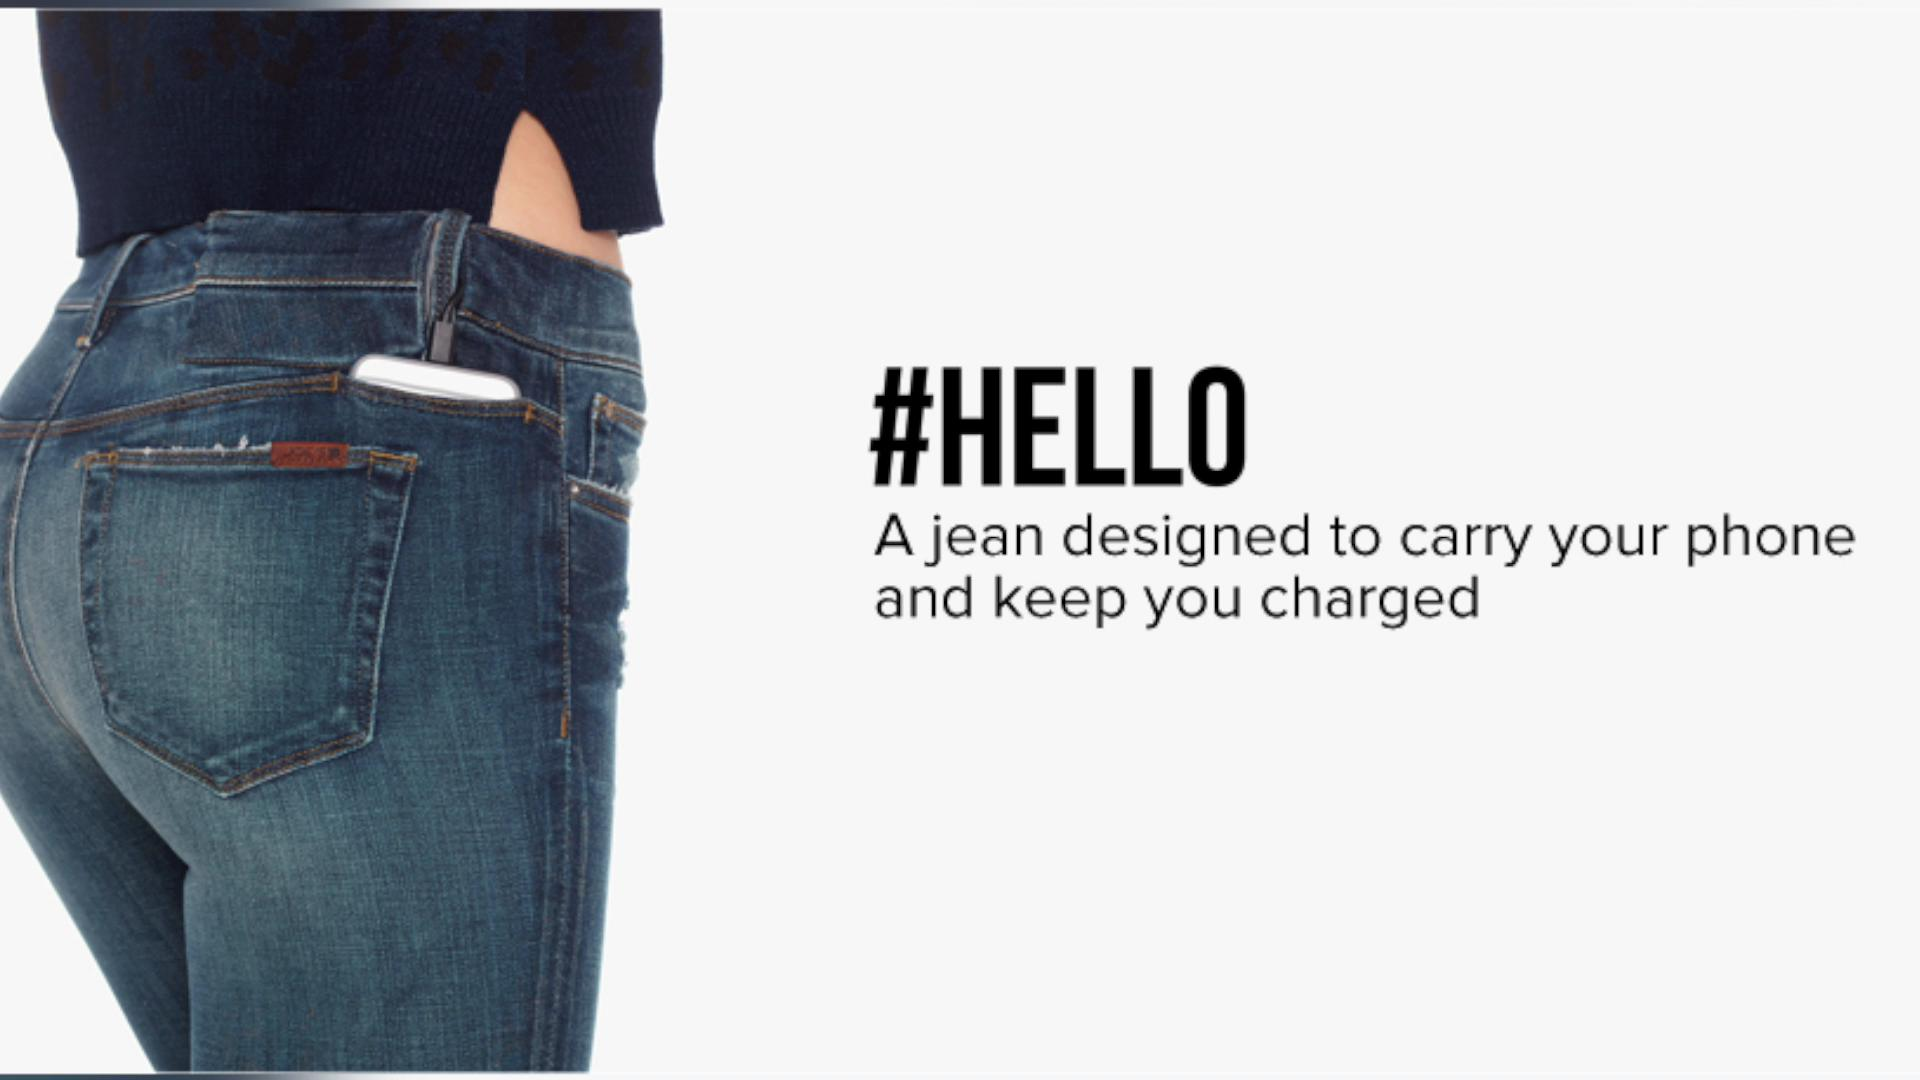 These jeans can charge your iPhone